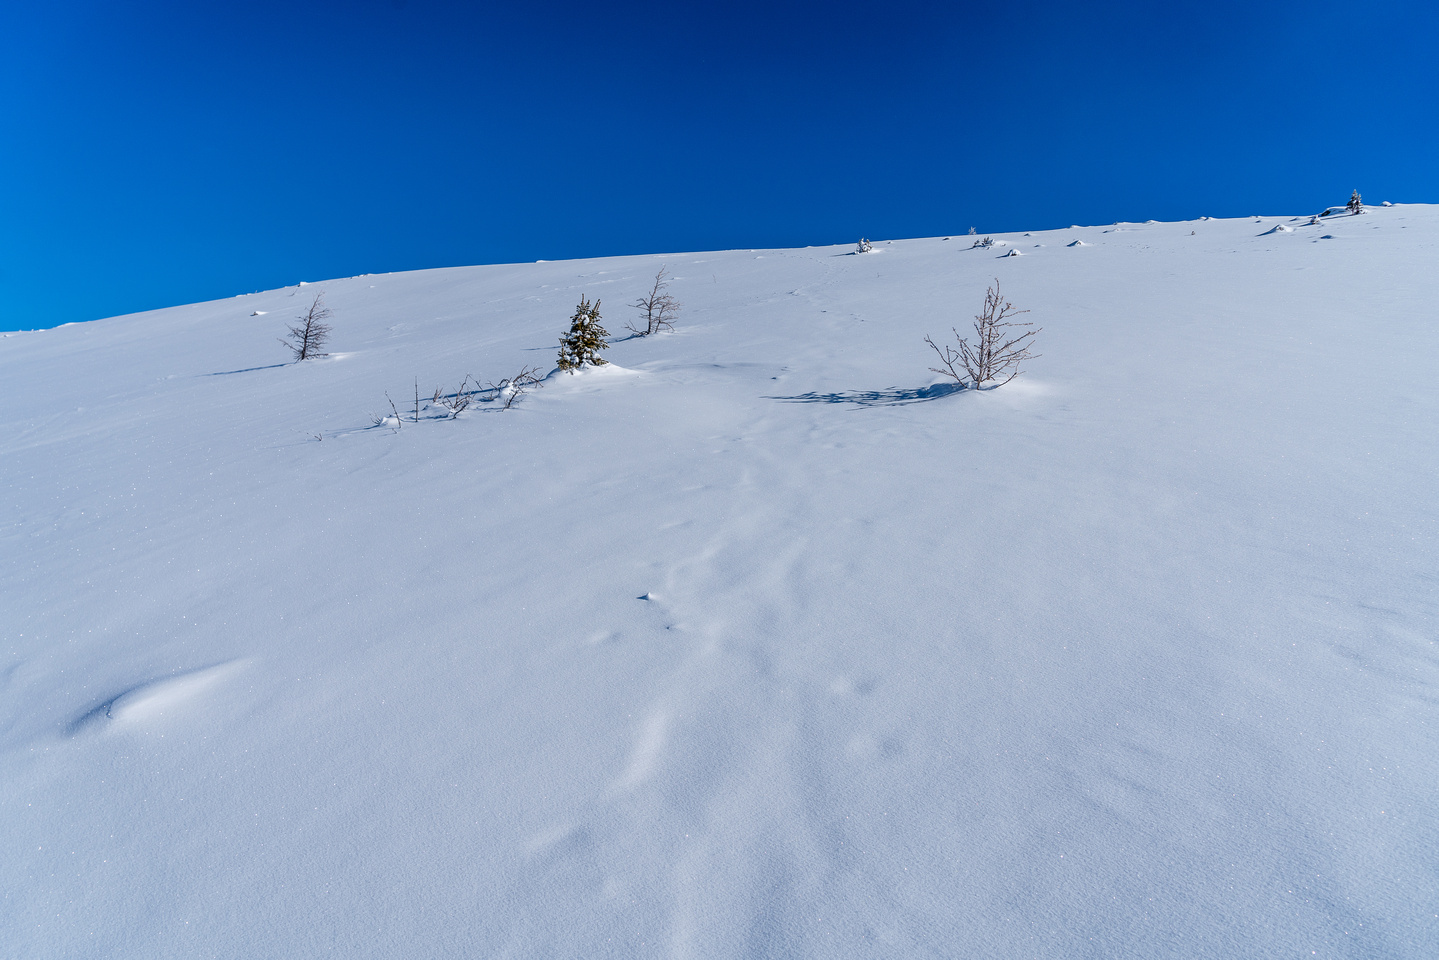 Untracked powder.